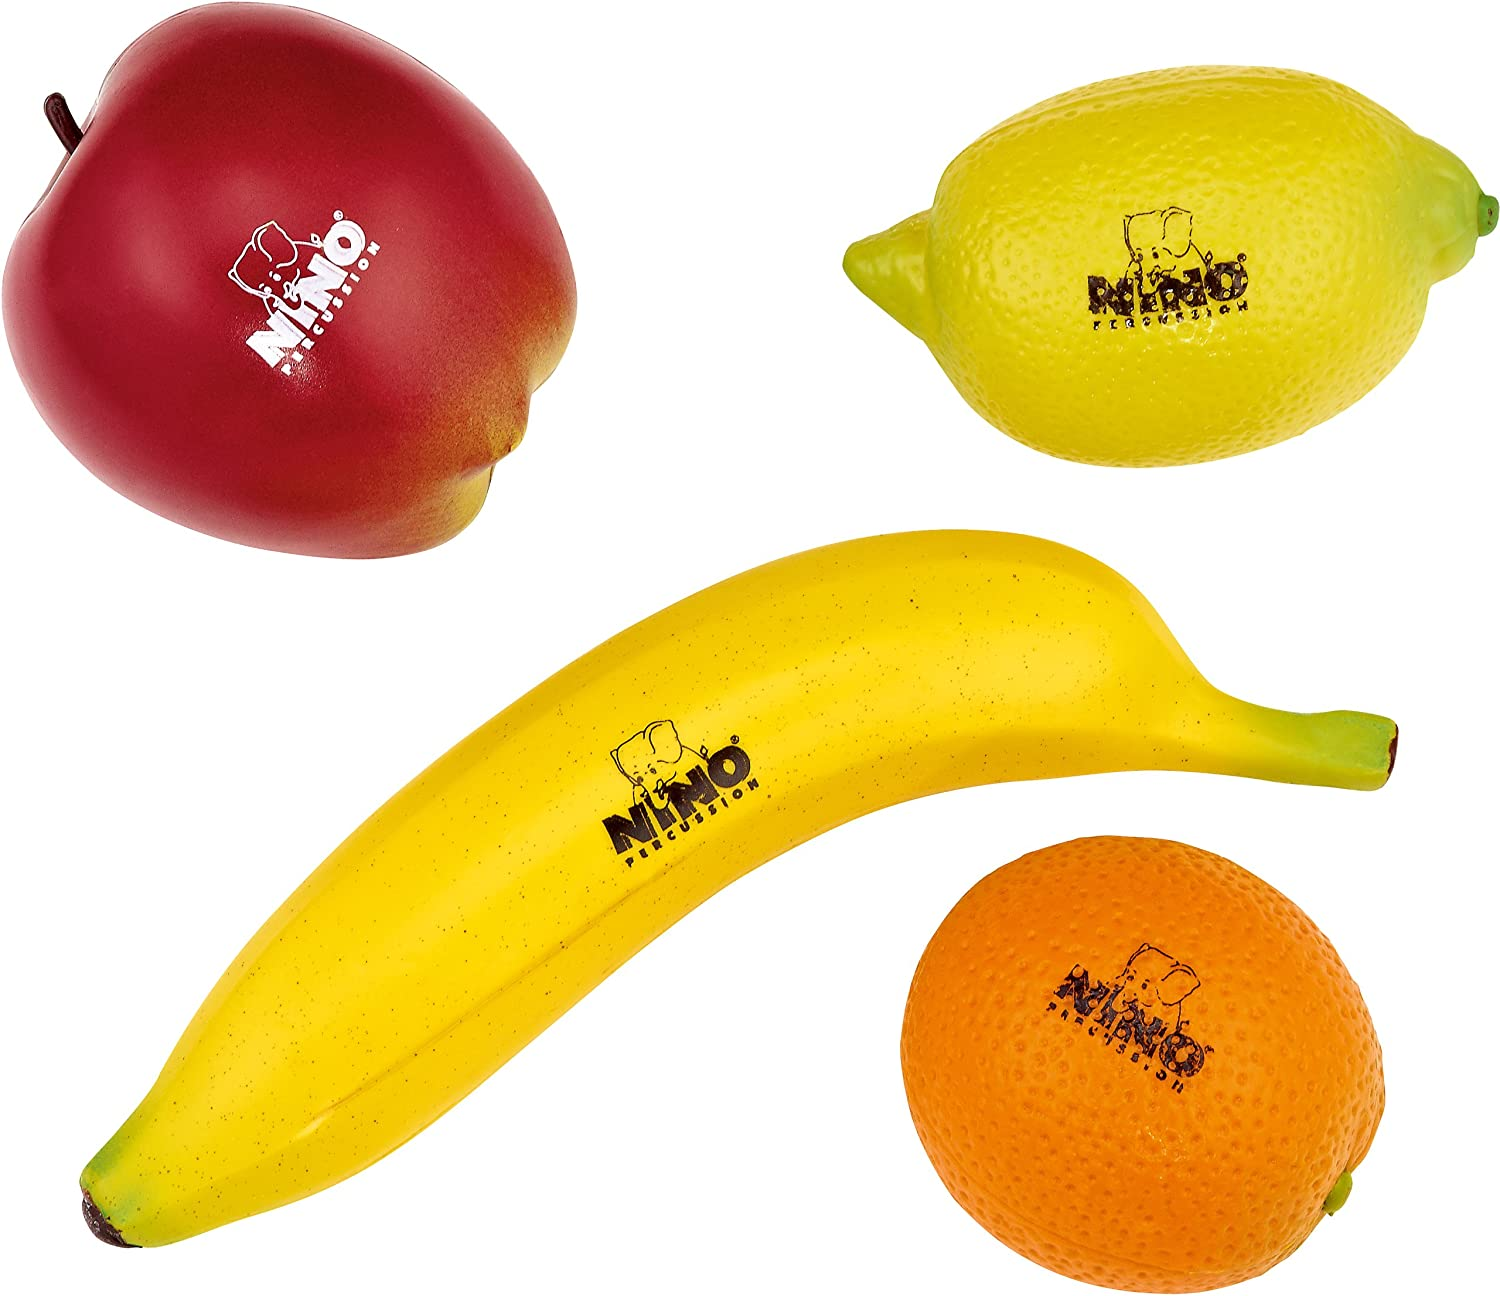 Nino Percussion Kids Plastic Percussion Shapes-NOT Made in China-for Classroom Music or Playing at Home, 2-Year Warranty, 4-Piece Fruit Shaker Set (NINOSET100)